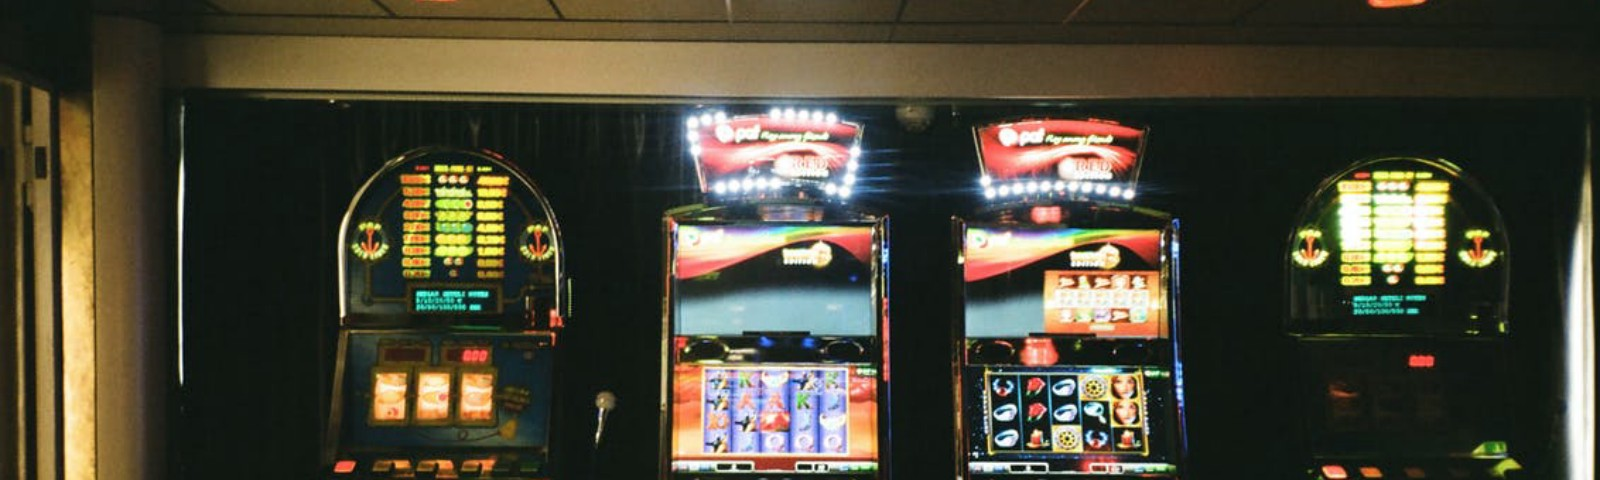 Lucky sevens: a flash fiction story about gambling in Vegas